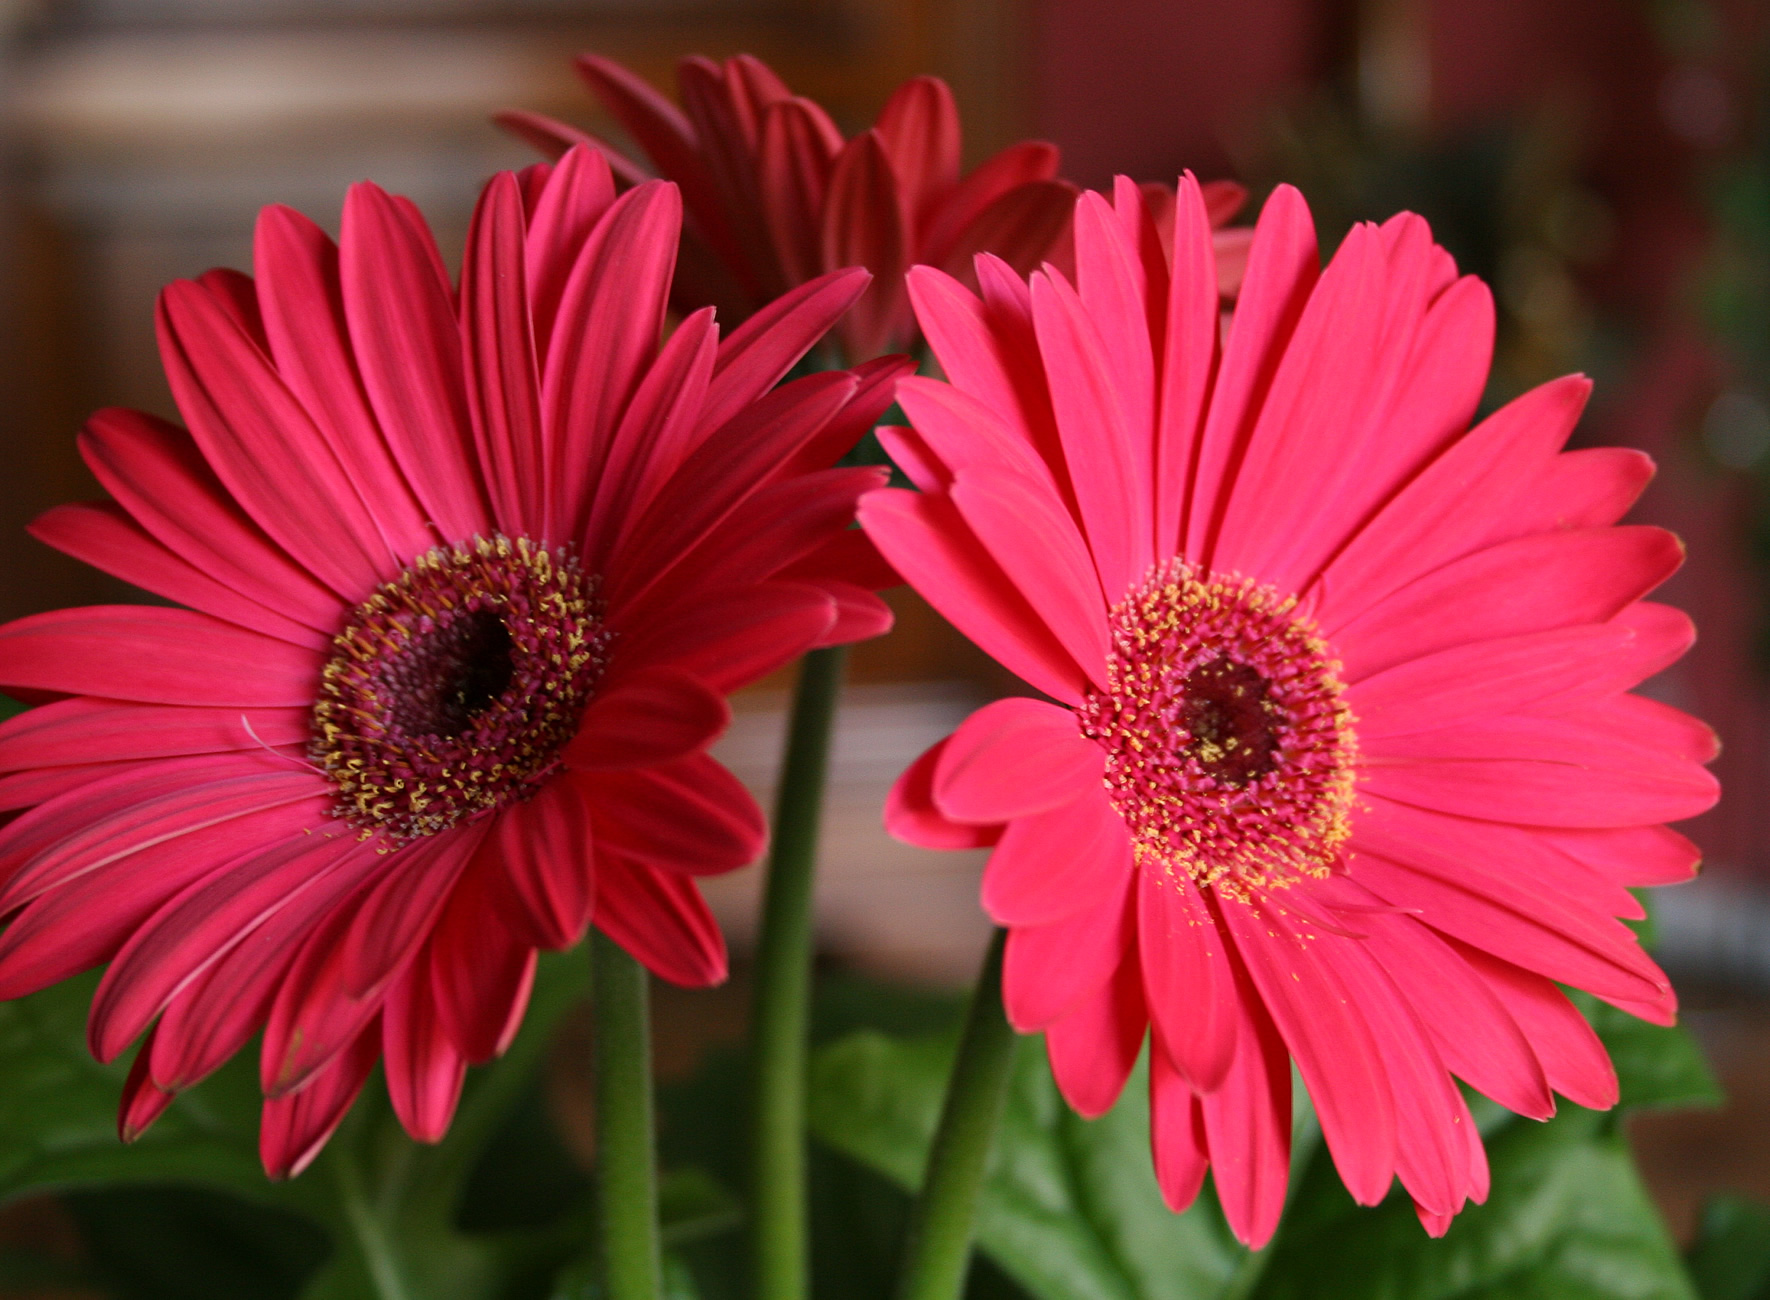 How To Make Cut Gerbera Daisies Last Longer Flower Pressflower Press